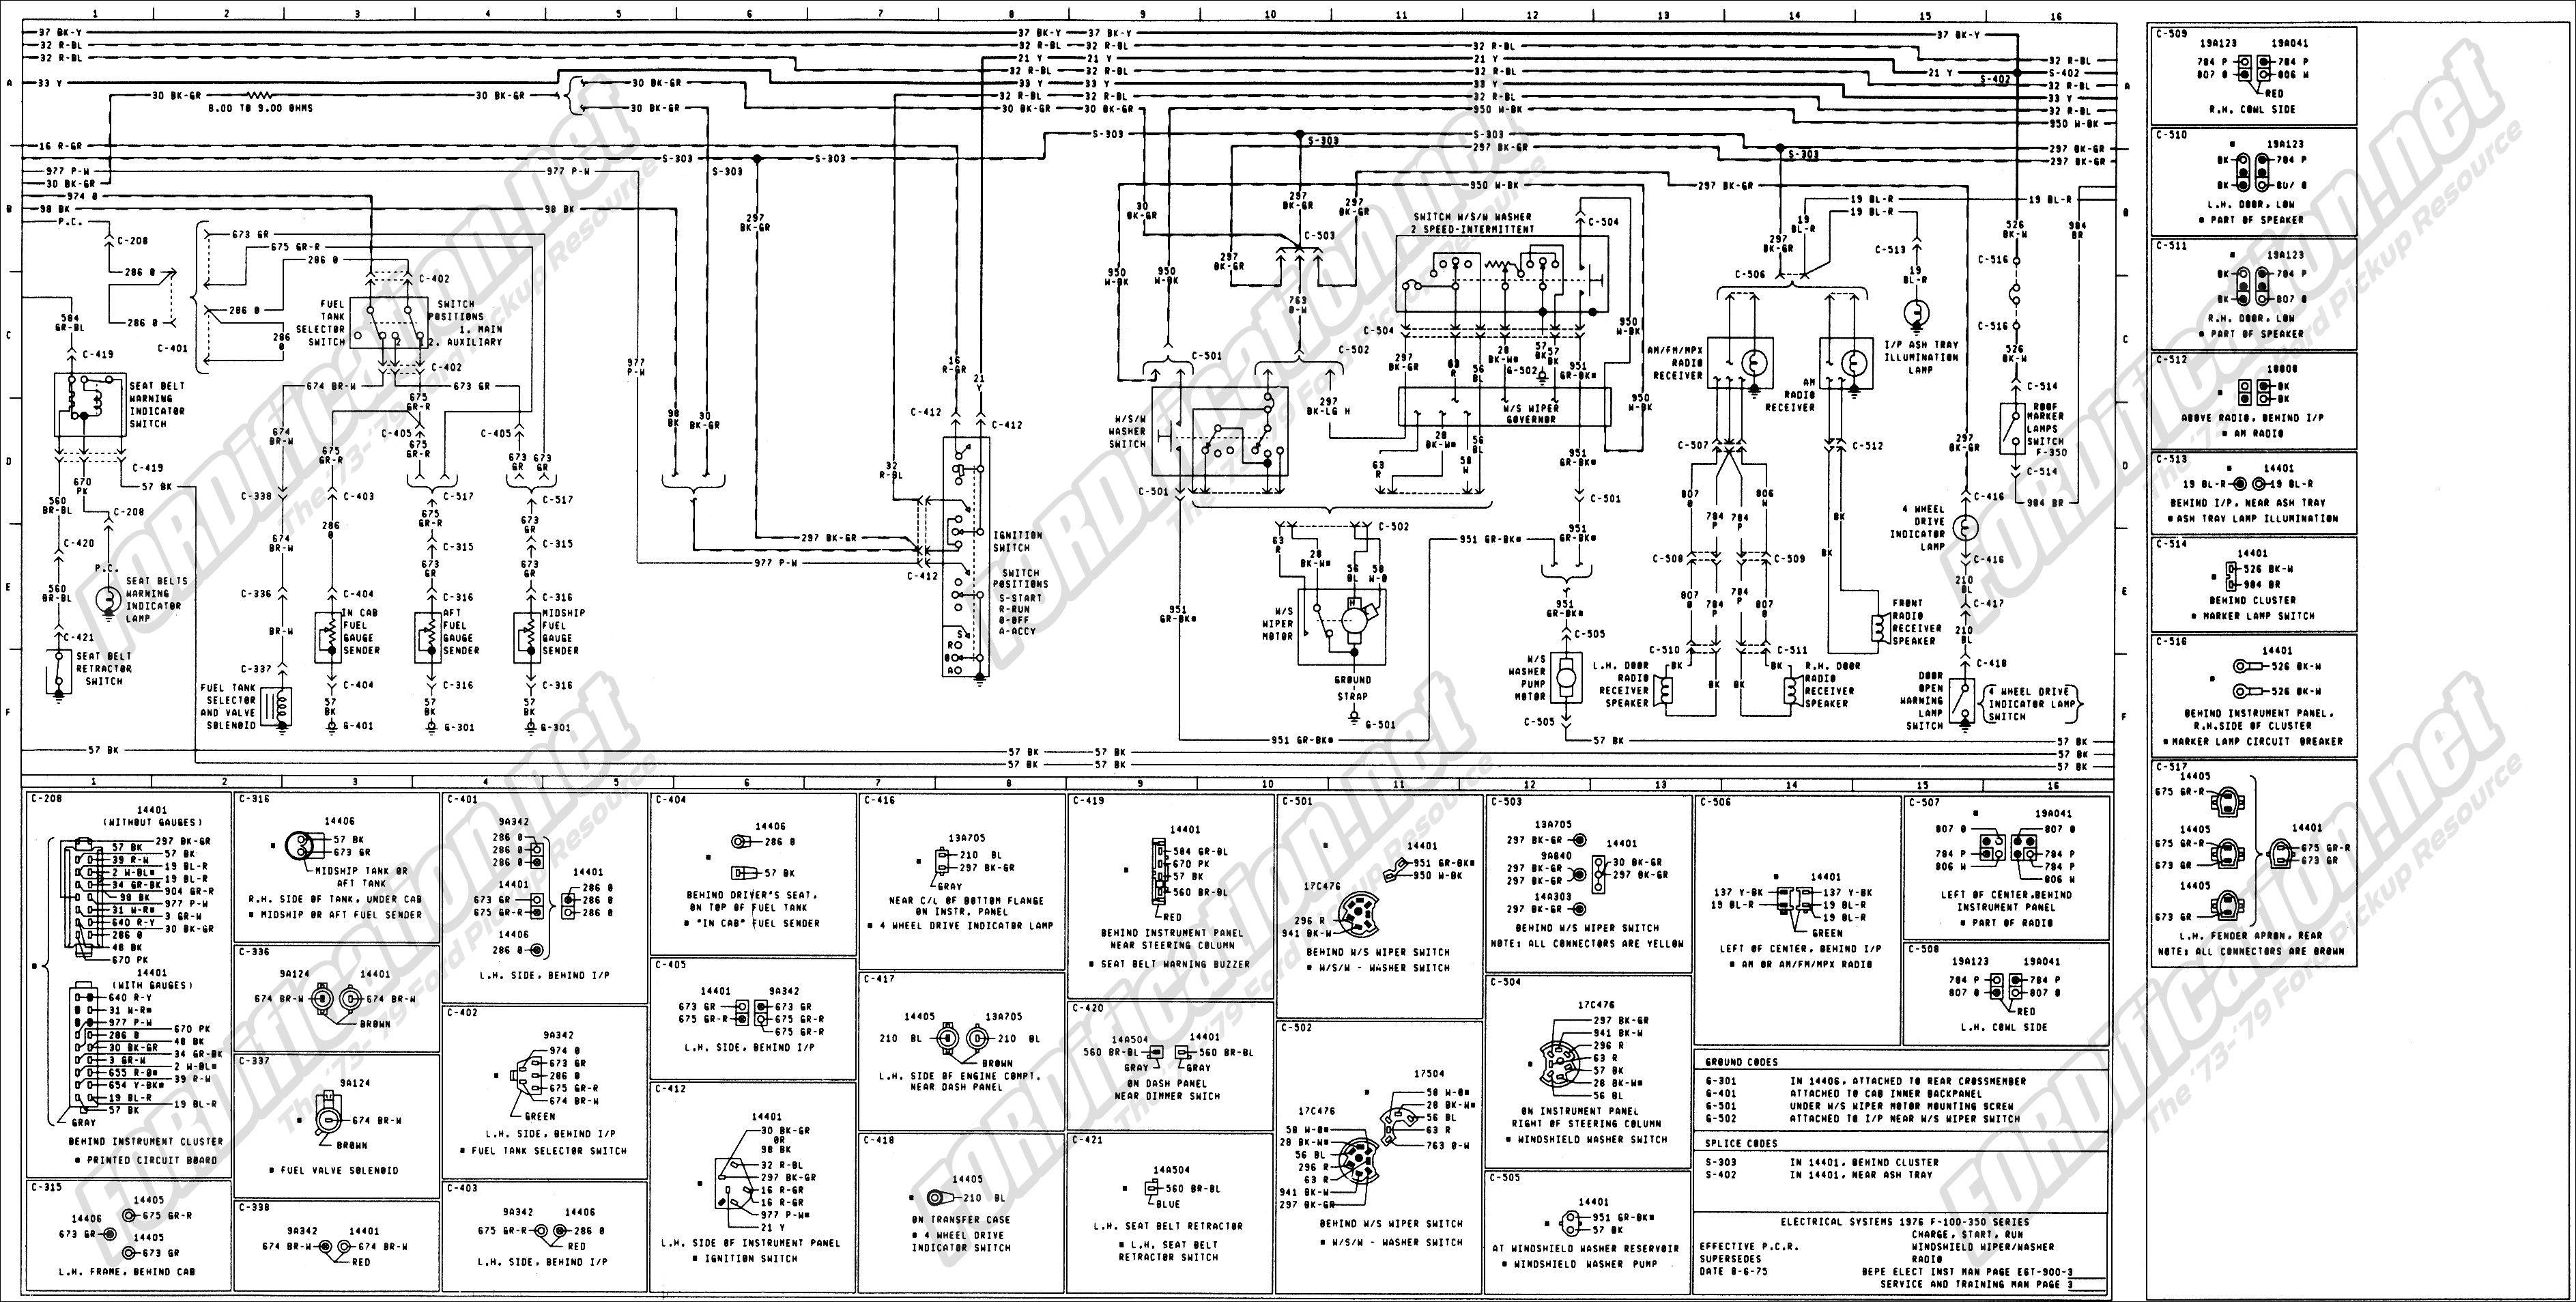 wiring diagram for 2003 focus, wiring diagram for 2003 s10, wiring diagram for 2003 blazer, wiring diagram for 2003 sonoma, wiring diagram for 2003 expedition, wiring diagram for 2003 explorer, wiring diagram for 2003 malibu, wiring diagram for 2003 tahoe, wiring diagram for 2003 grand cherokee, wiring diagram for 2003 grand marquis, wiring diagram for 2003 dakota, wiring diagram for 2003 xterra, wiring diagram for 2003 ram 1500, wiring diagram for 2003 grand caravan, wiring diagram for 2003 silverado, on wiring diagram for 2003 f350